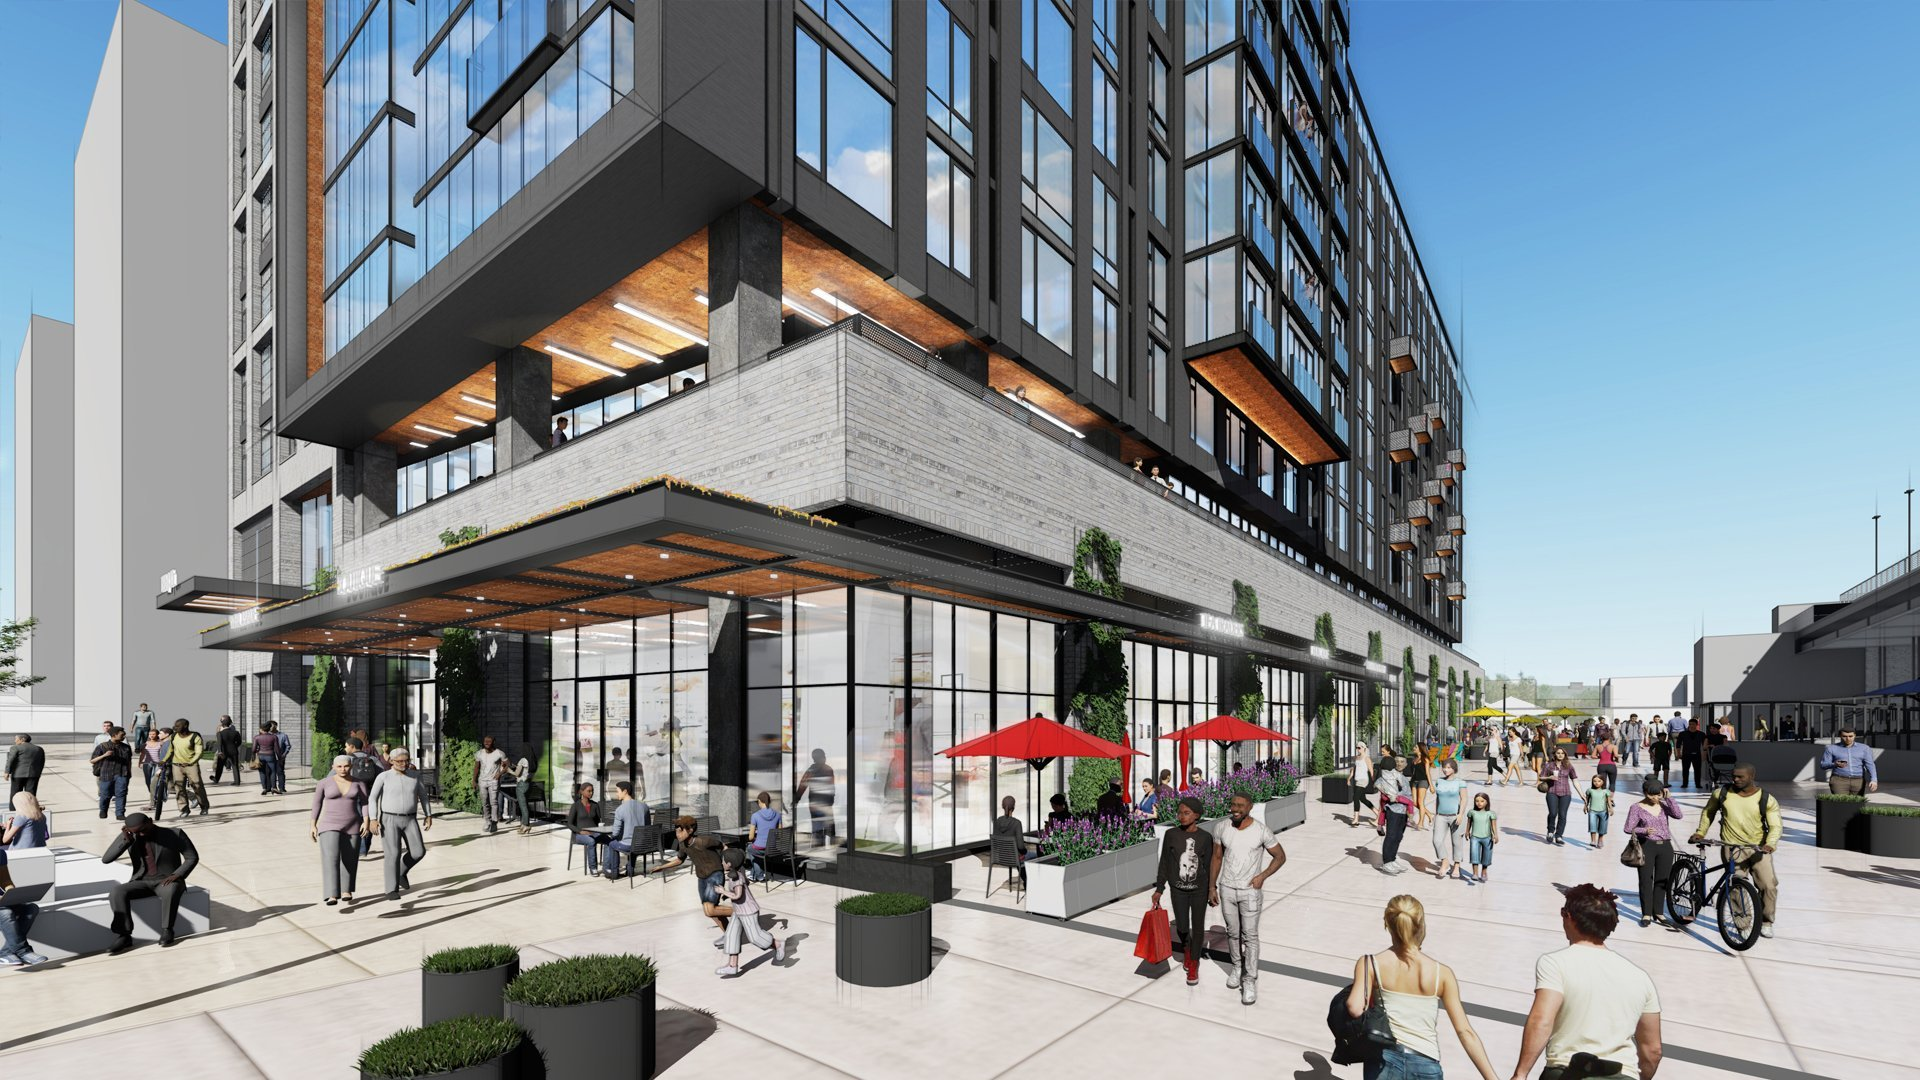 Gables Residential Breaks Ground on New 300-Unit Apartment Development in The Heart of DC's Union Market District Neighborhood